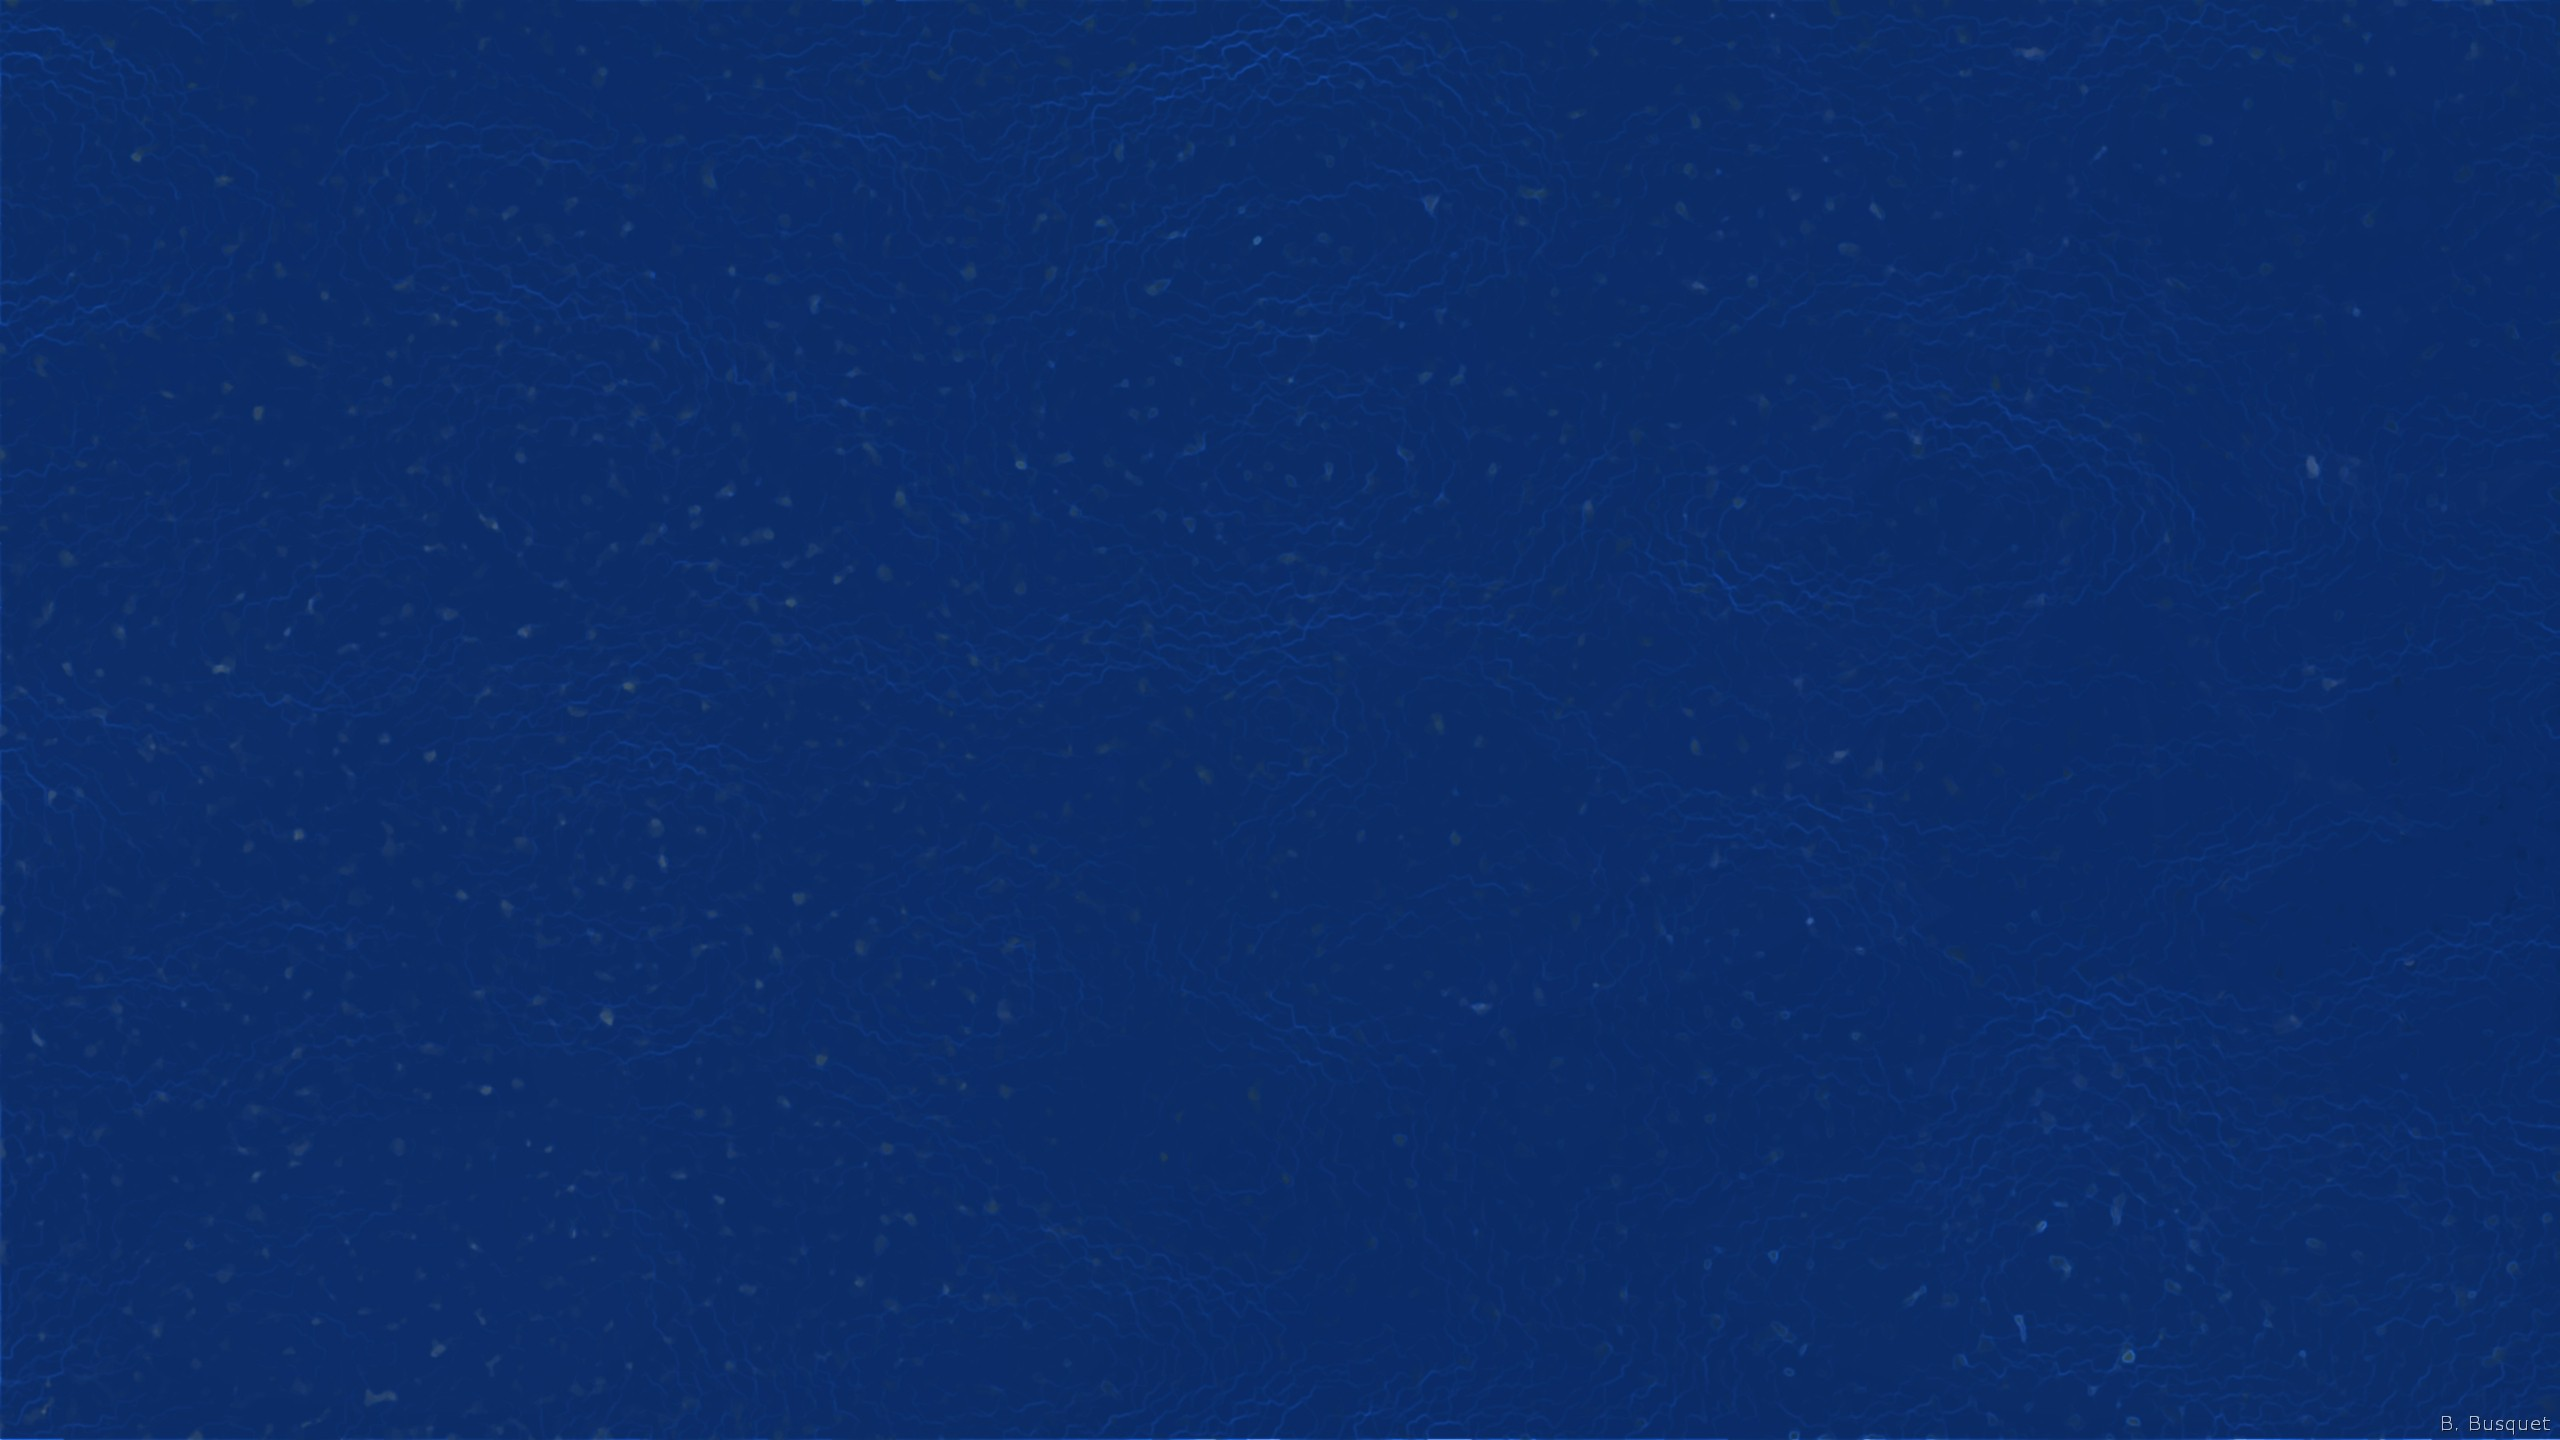 blue abstract background wallpaper - photo #32